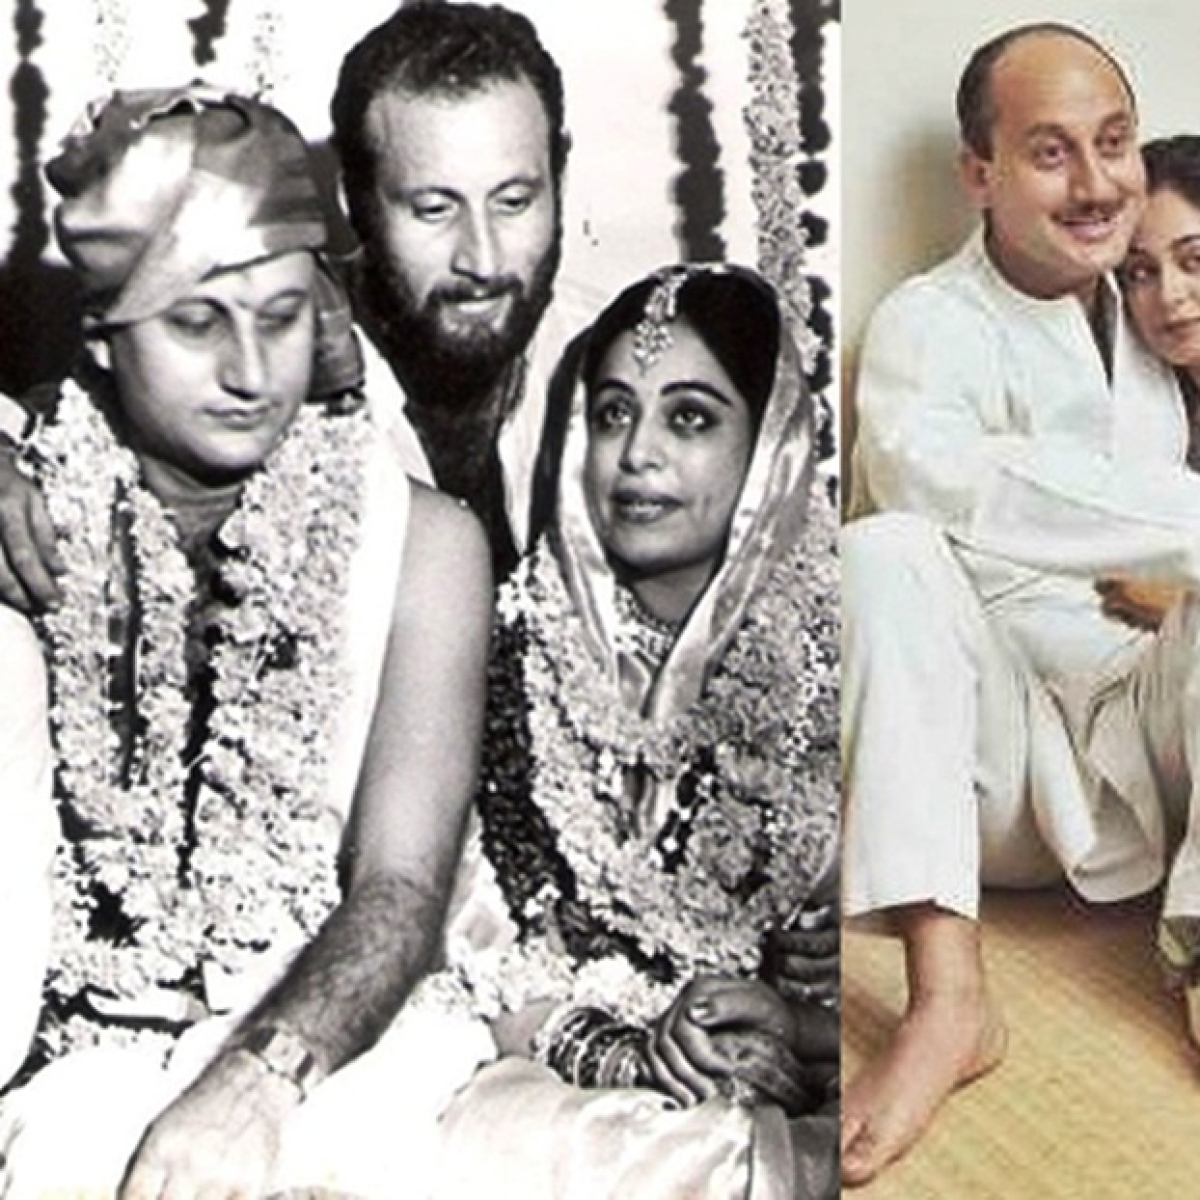 Anupam Kher shares wedding photo to wish wife Kirron Kher on 34th wedding anniversary